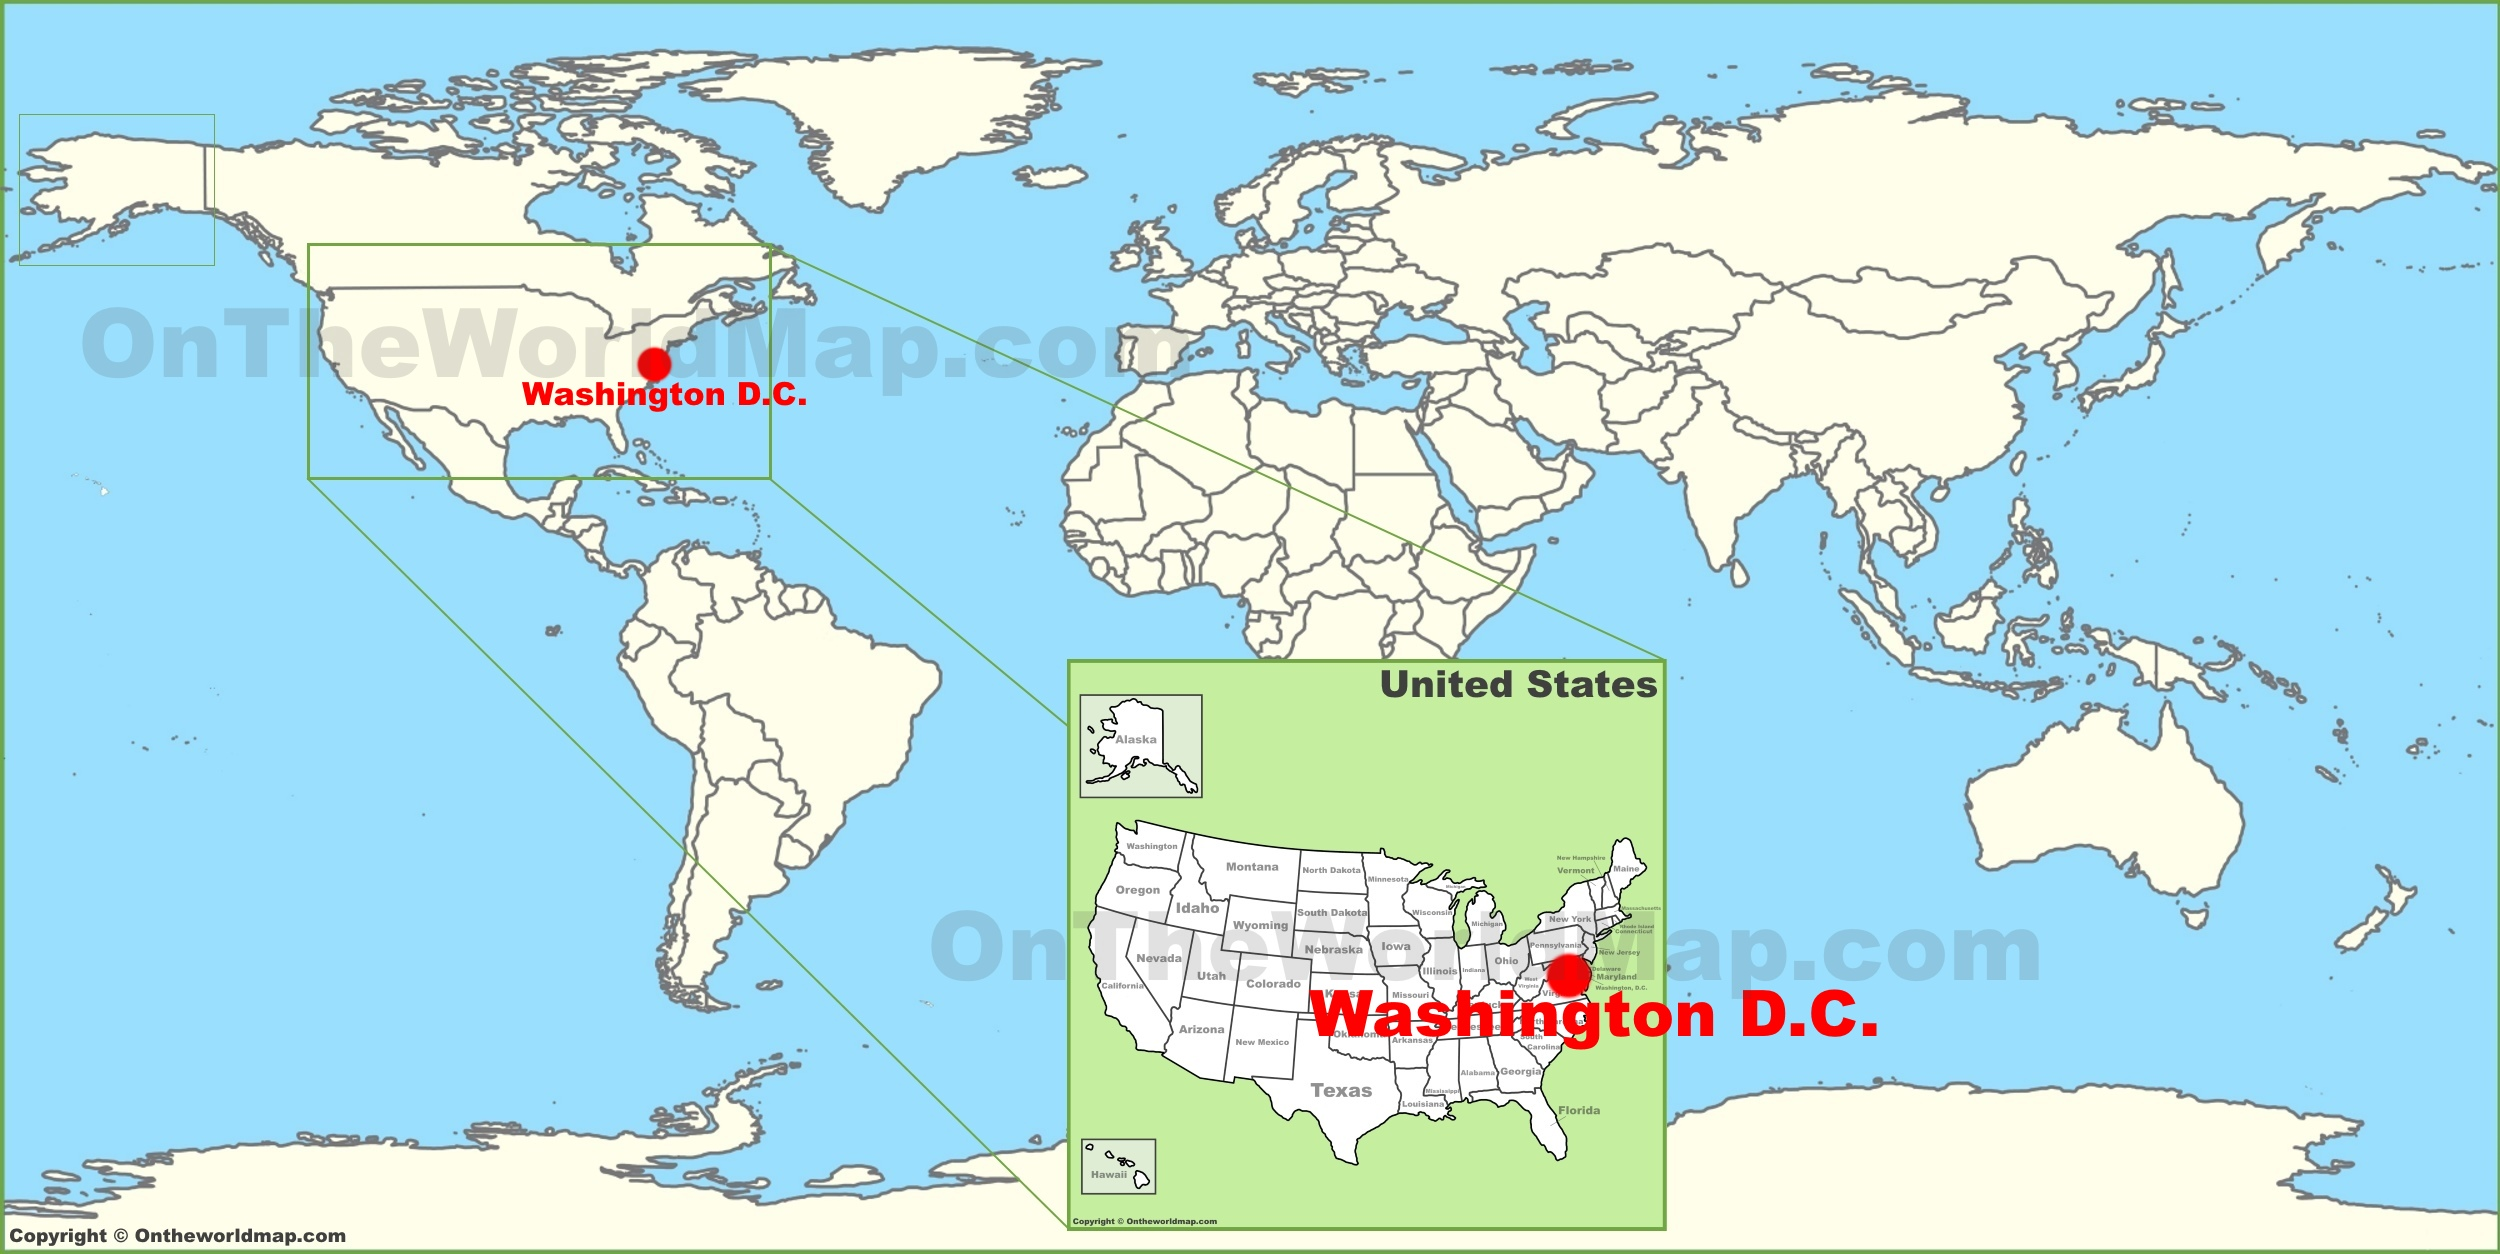 Washington dc on the world map washington dc on the world map gumiabroncs Choice Image